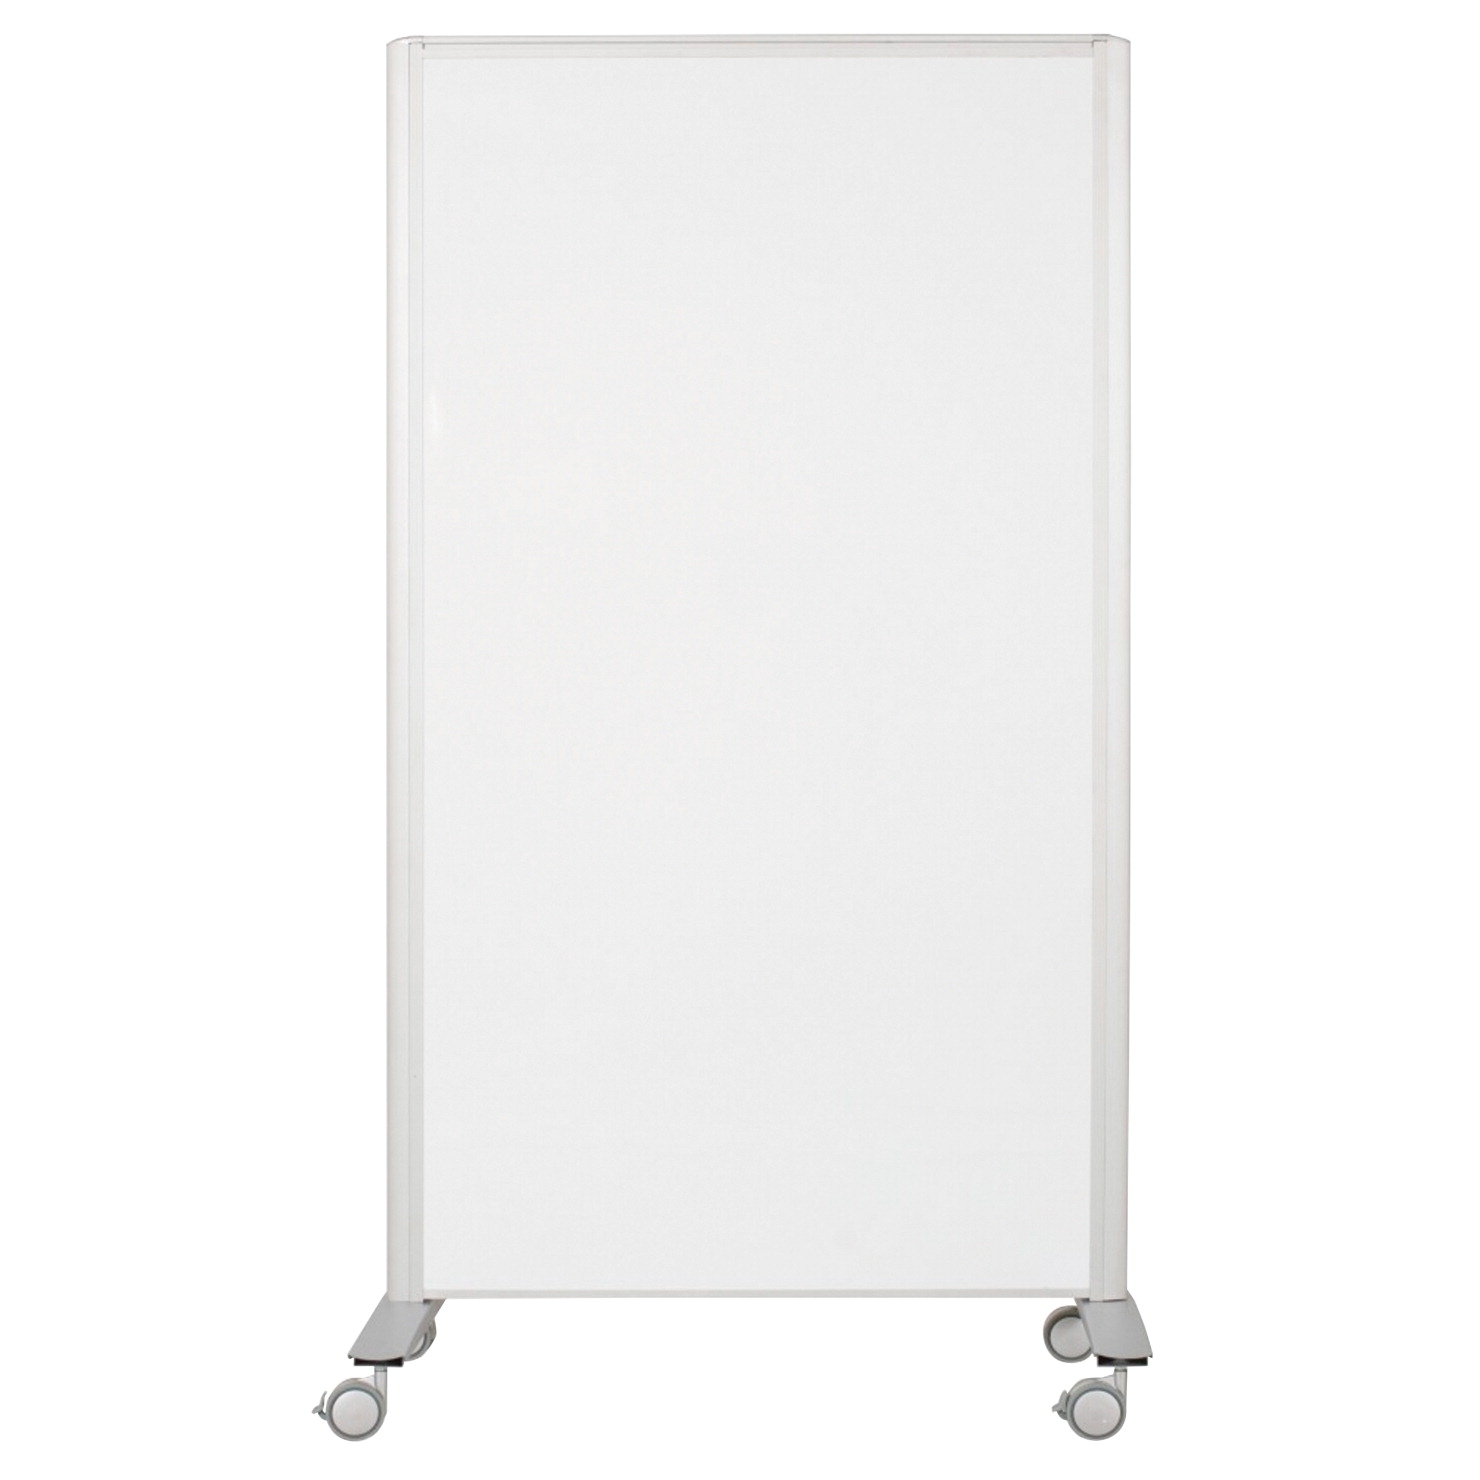 Best-rite Lumina Double Sided Room Divider With Caster; Markerboard Platinum Frame - 1366101 - Flying Disc Sports Double Disc Court 1366101